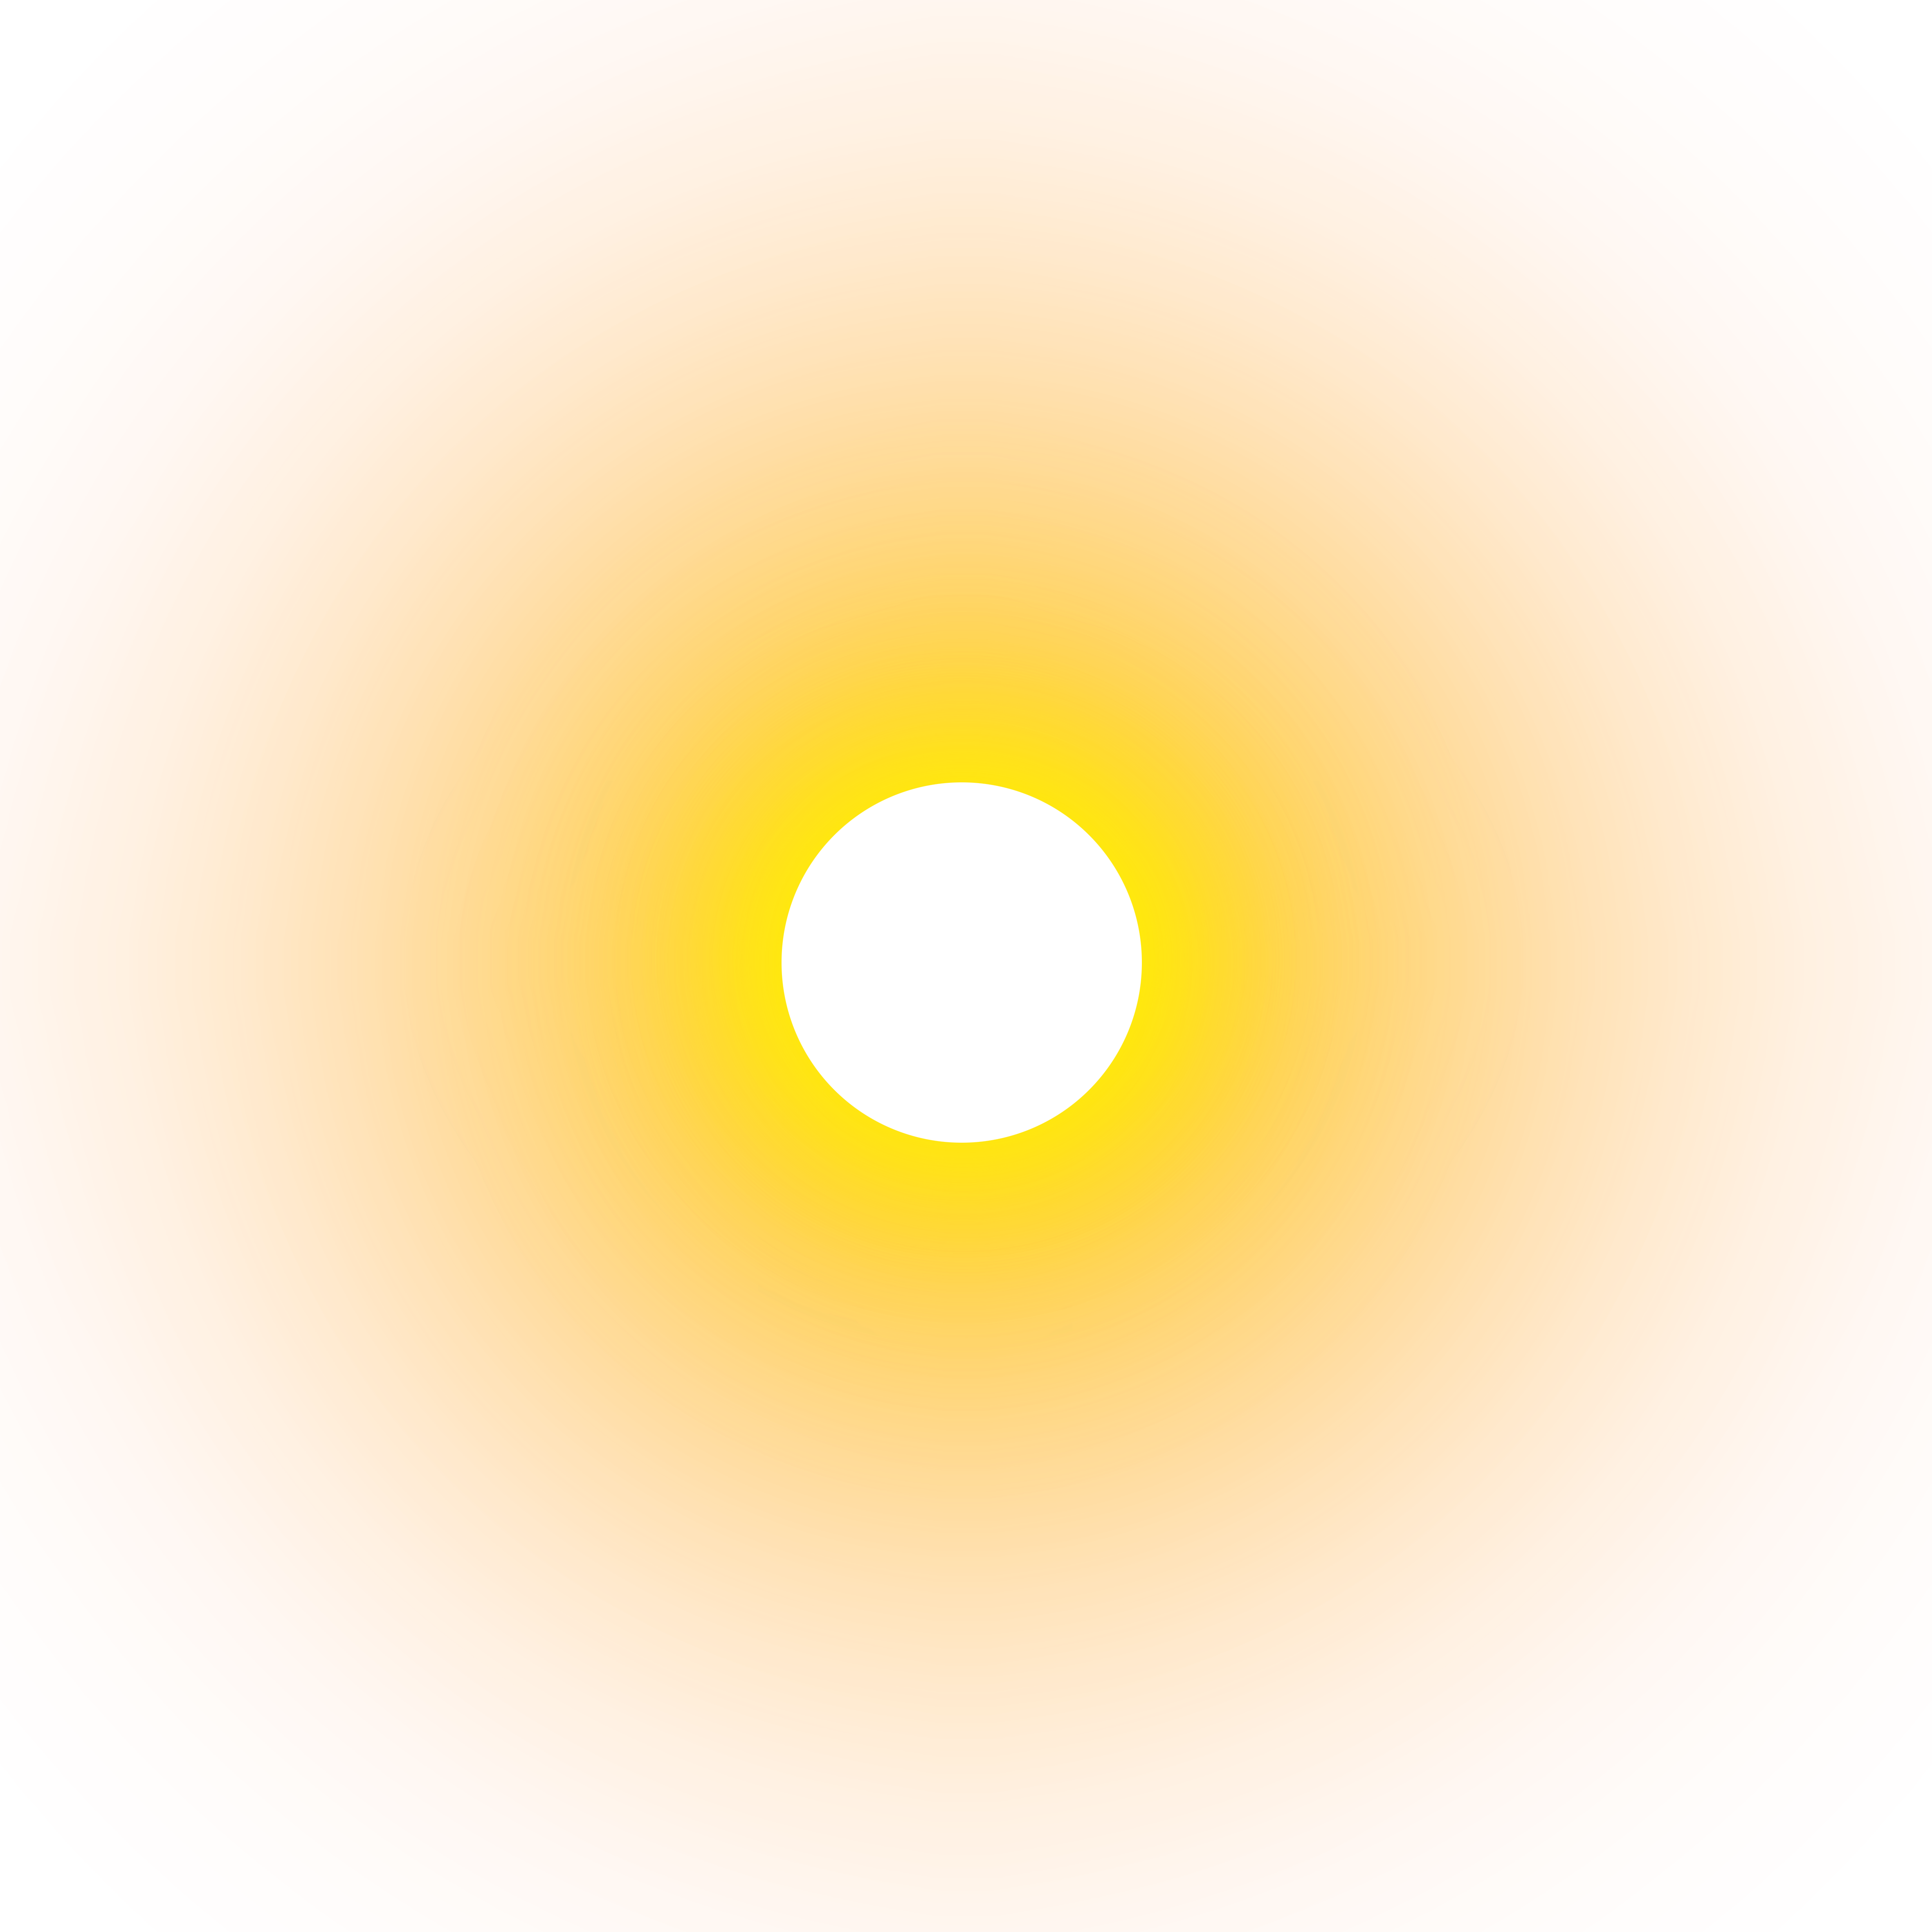 Sun PNG Transparent Background - 137185